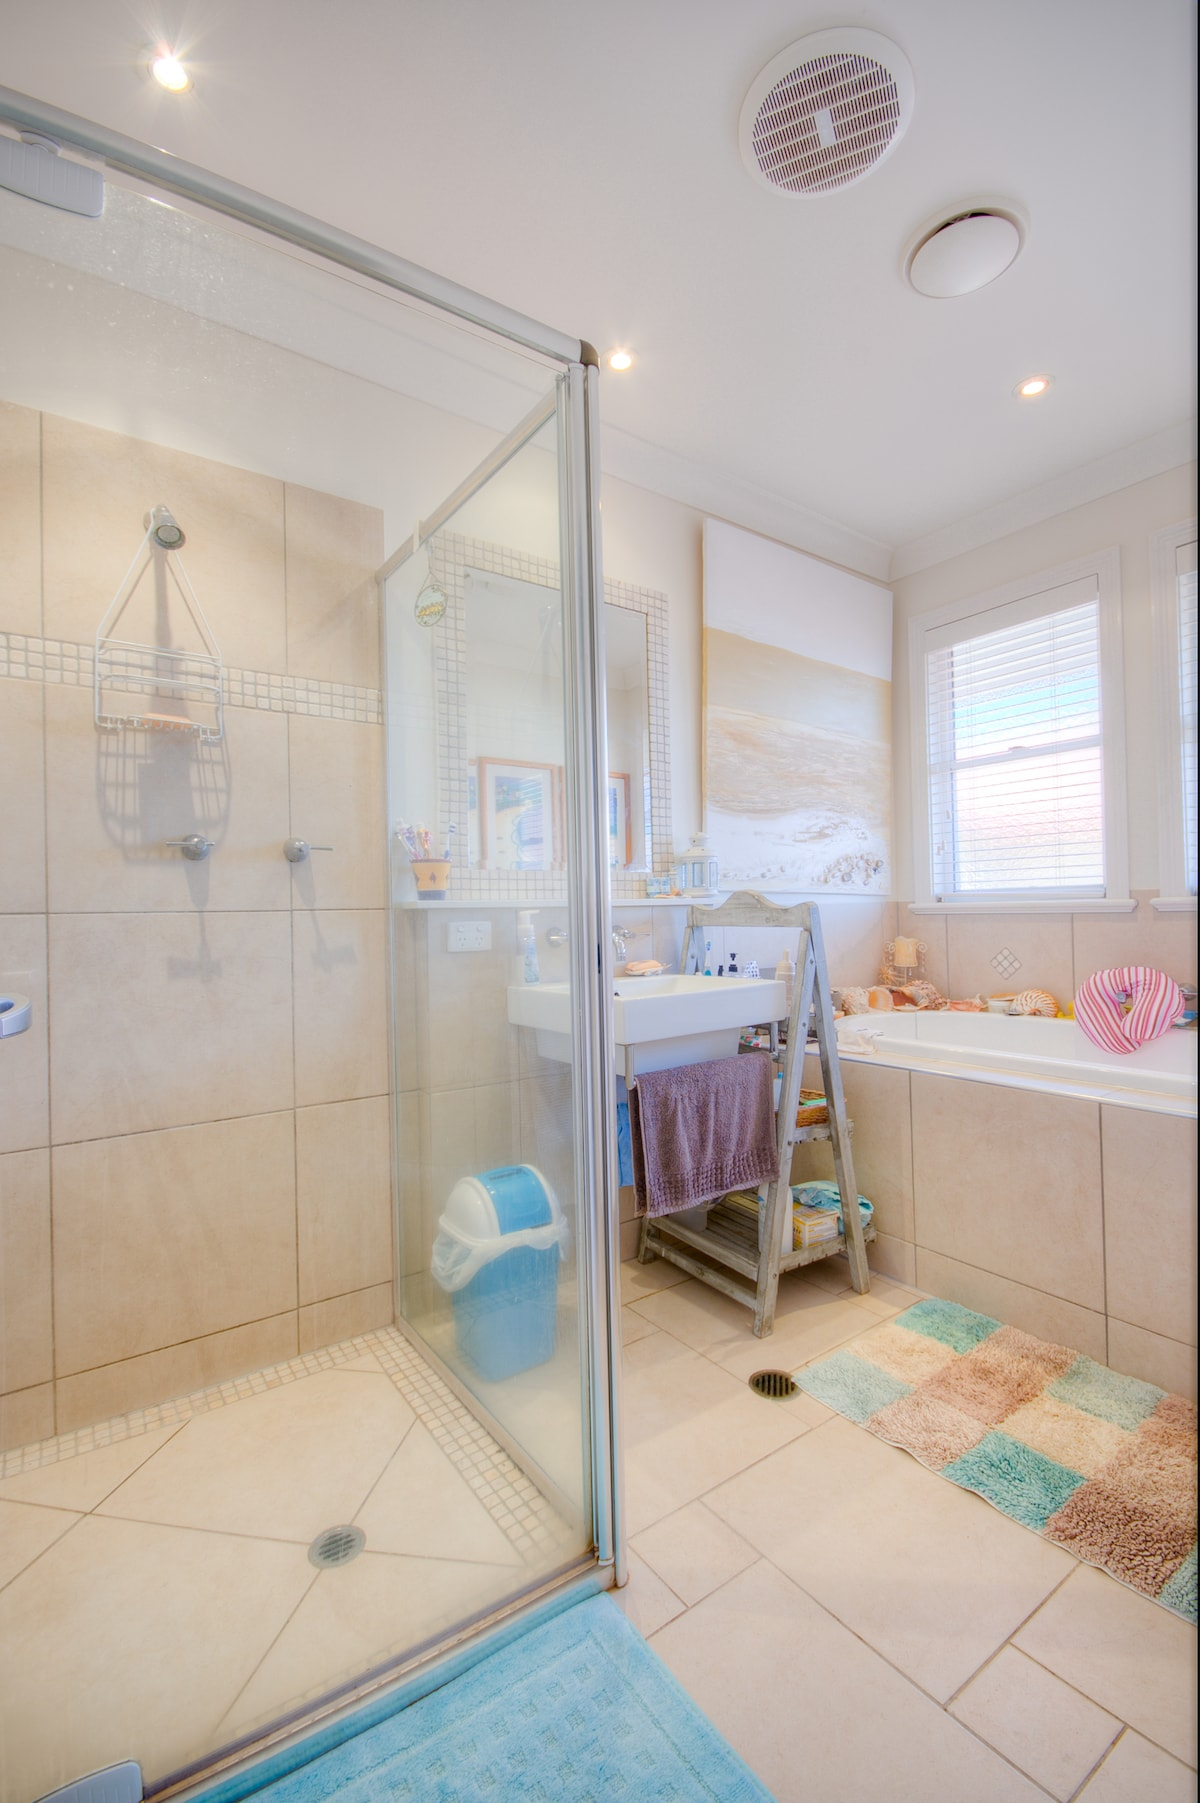 Your Bathroom with deep bath and shower next to your bedroom.